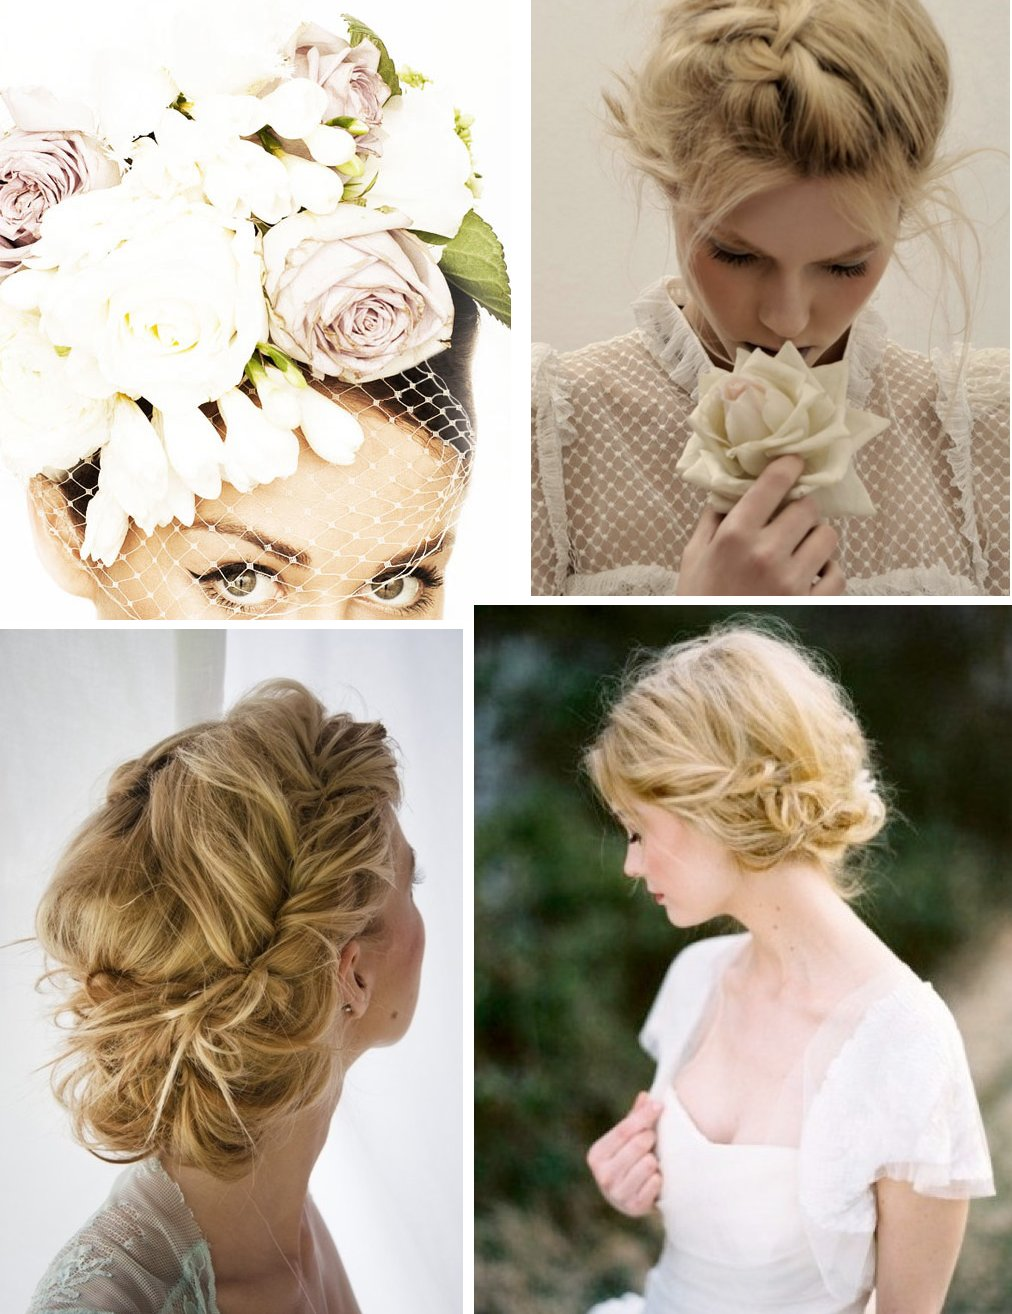 Diy-wedding-hair-tutorials-bridal-beauty-celebrity-inspired-bridal-braids.full